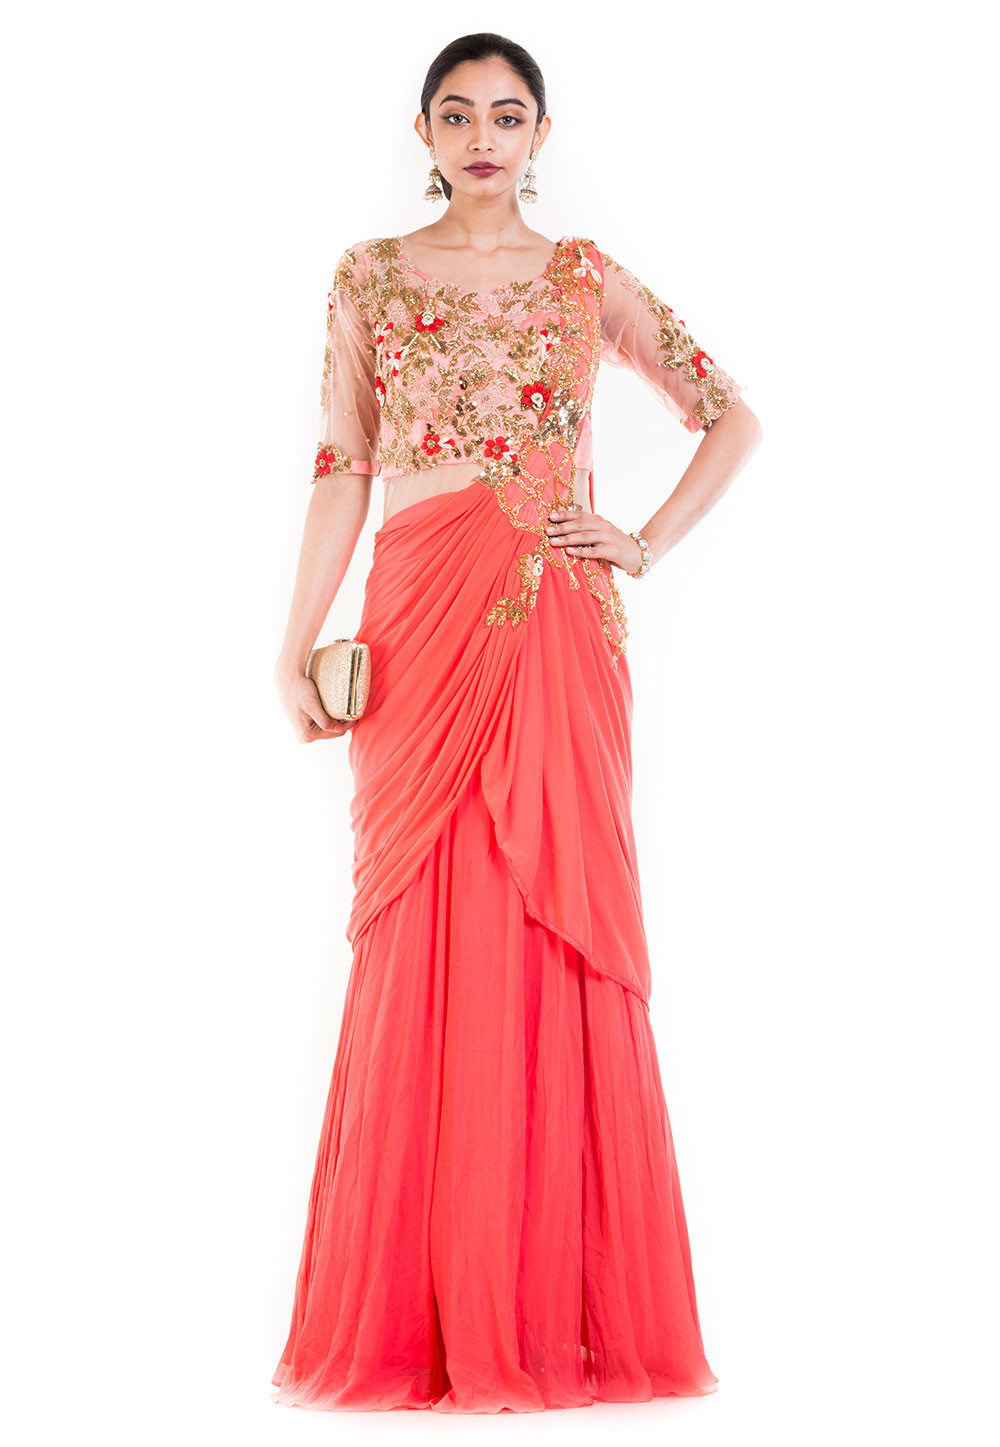 cb0206f062 Know About The Designer Saree Gowns | Utsavpedia